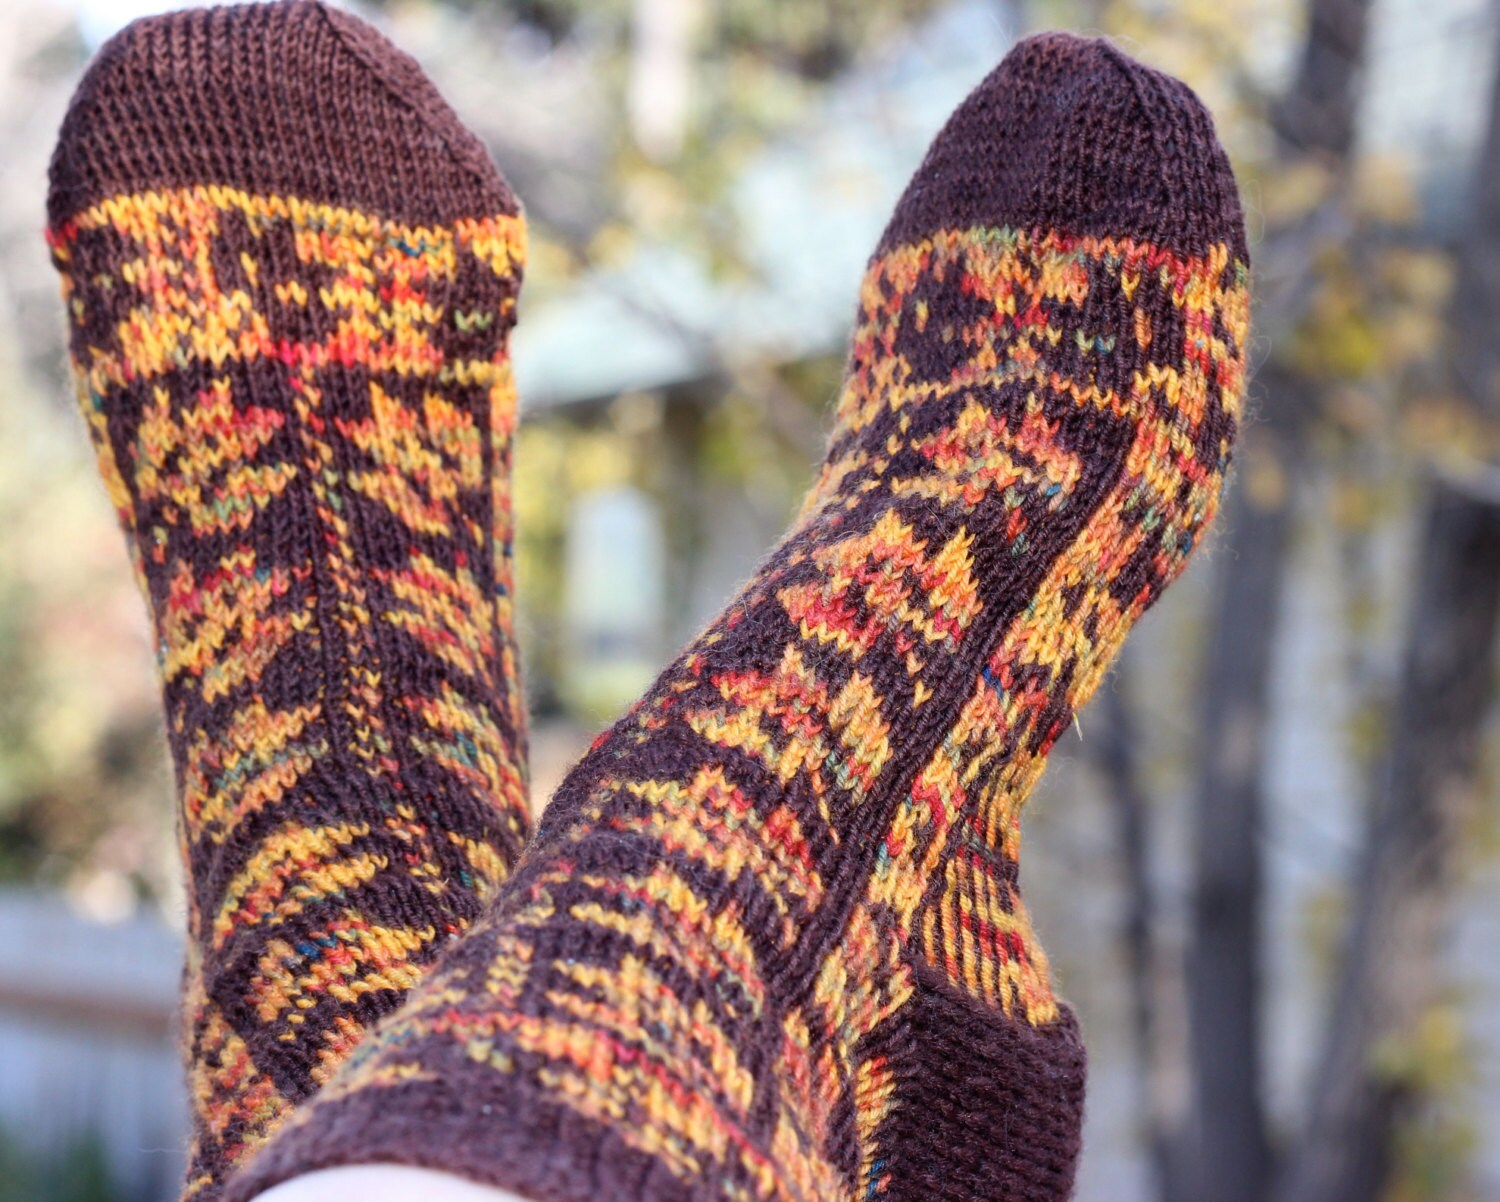 Knitting Pattern Reading Socks : Knitting pattern: Mabon Leaves SocksFair isle stranded